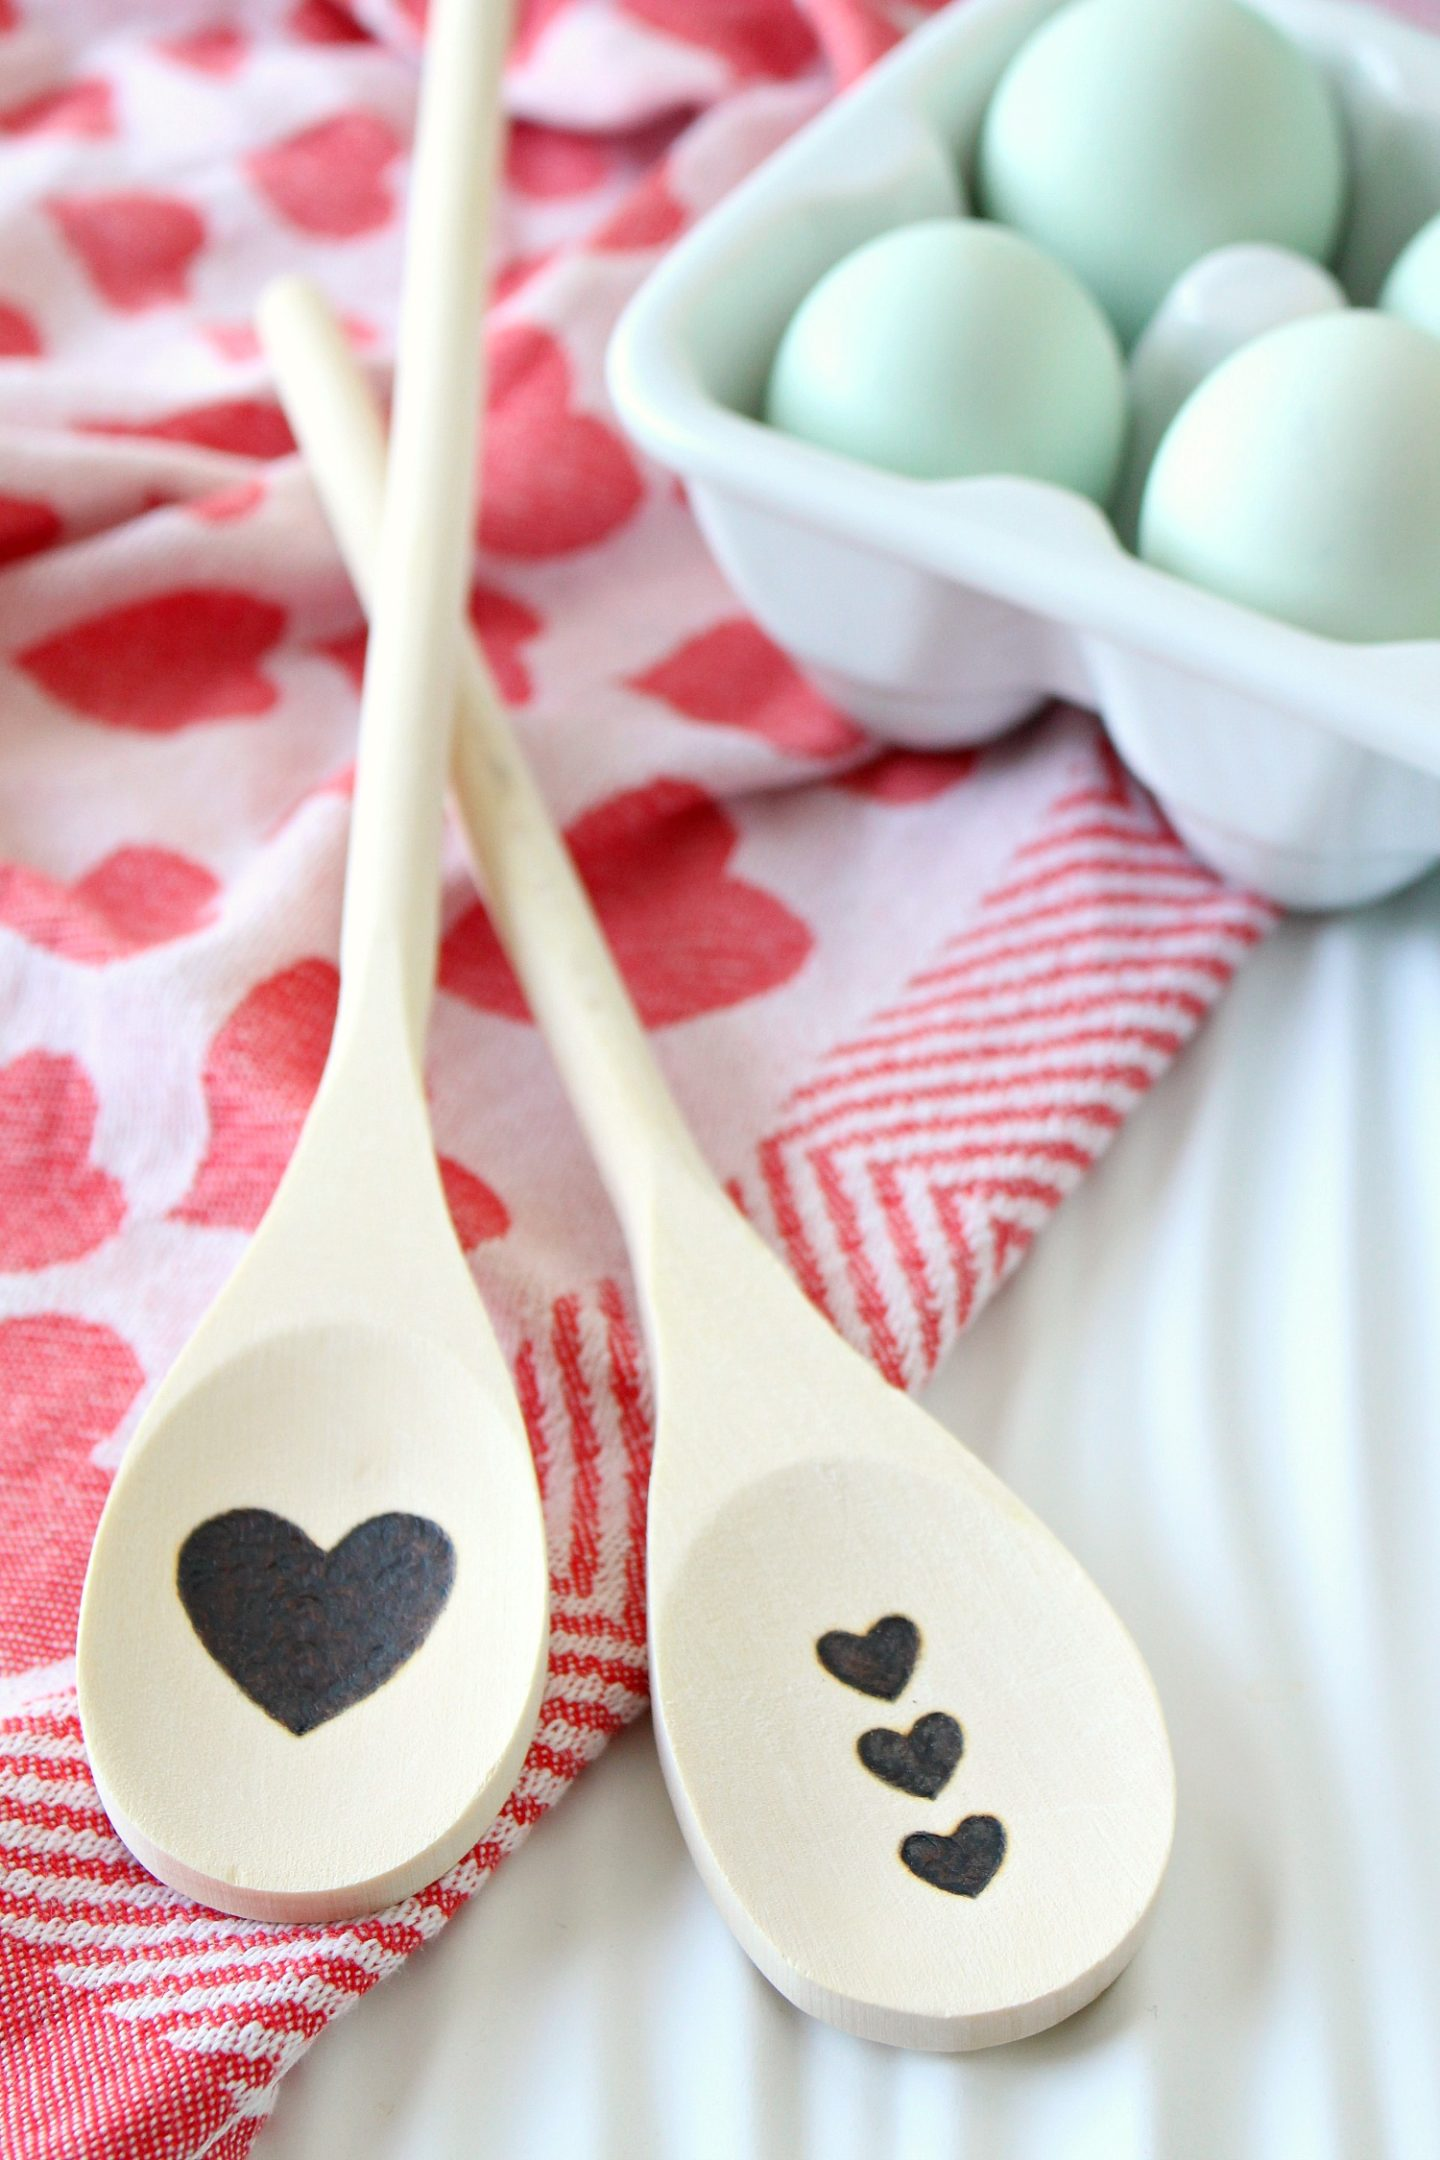 DIY Wood Burned Spoon | Easy DIY Valentine's Day Gift Idea